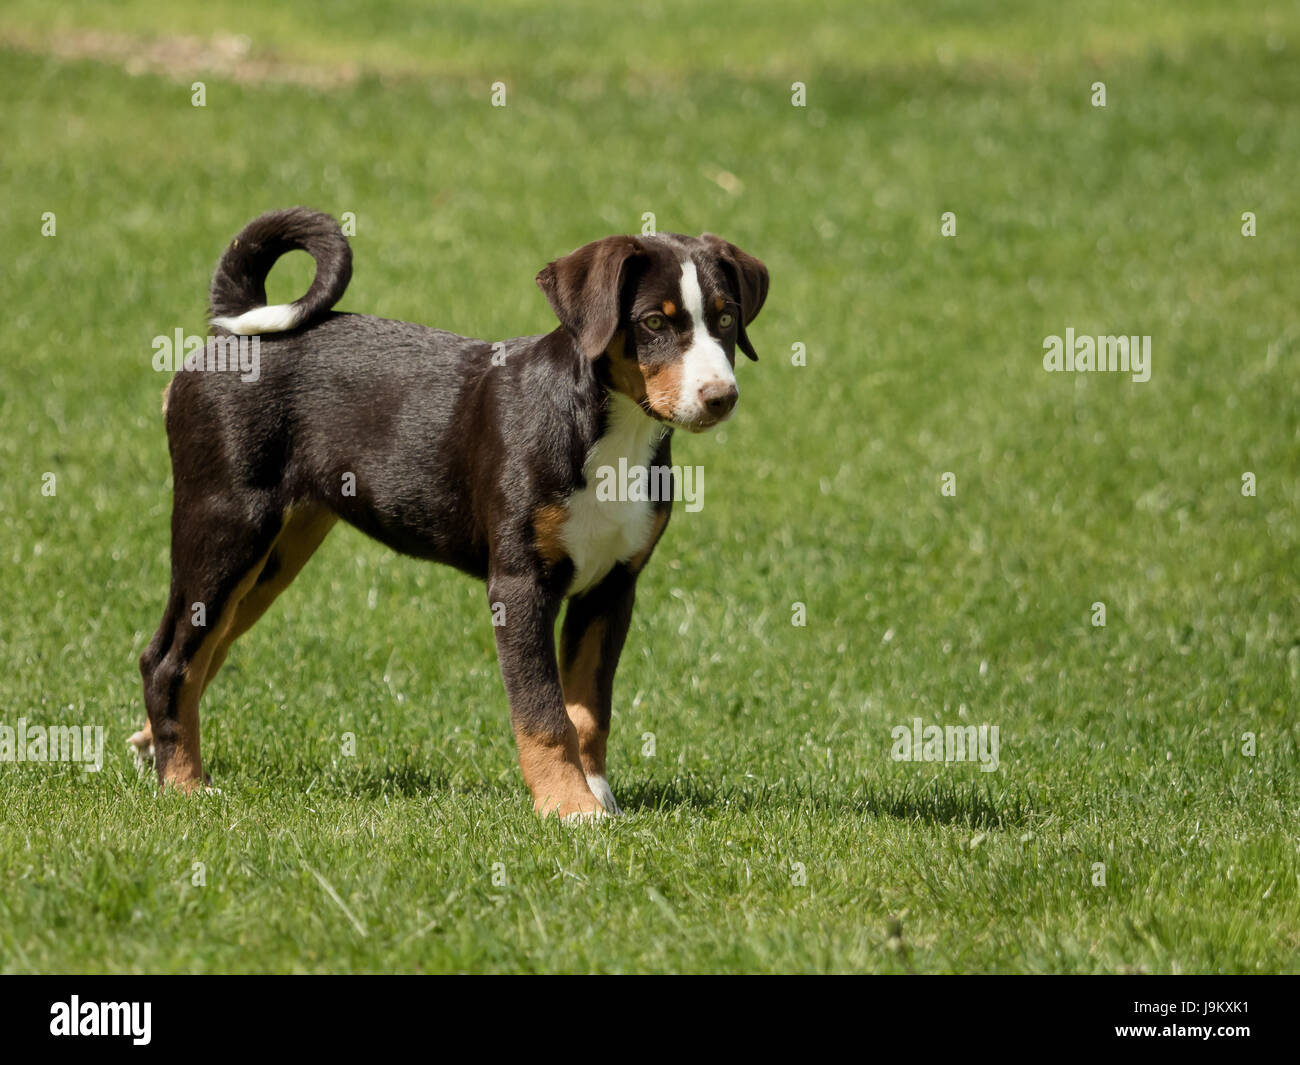 Appenzeller puppy stands and waits - Stock Image